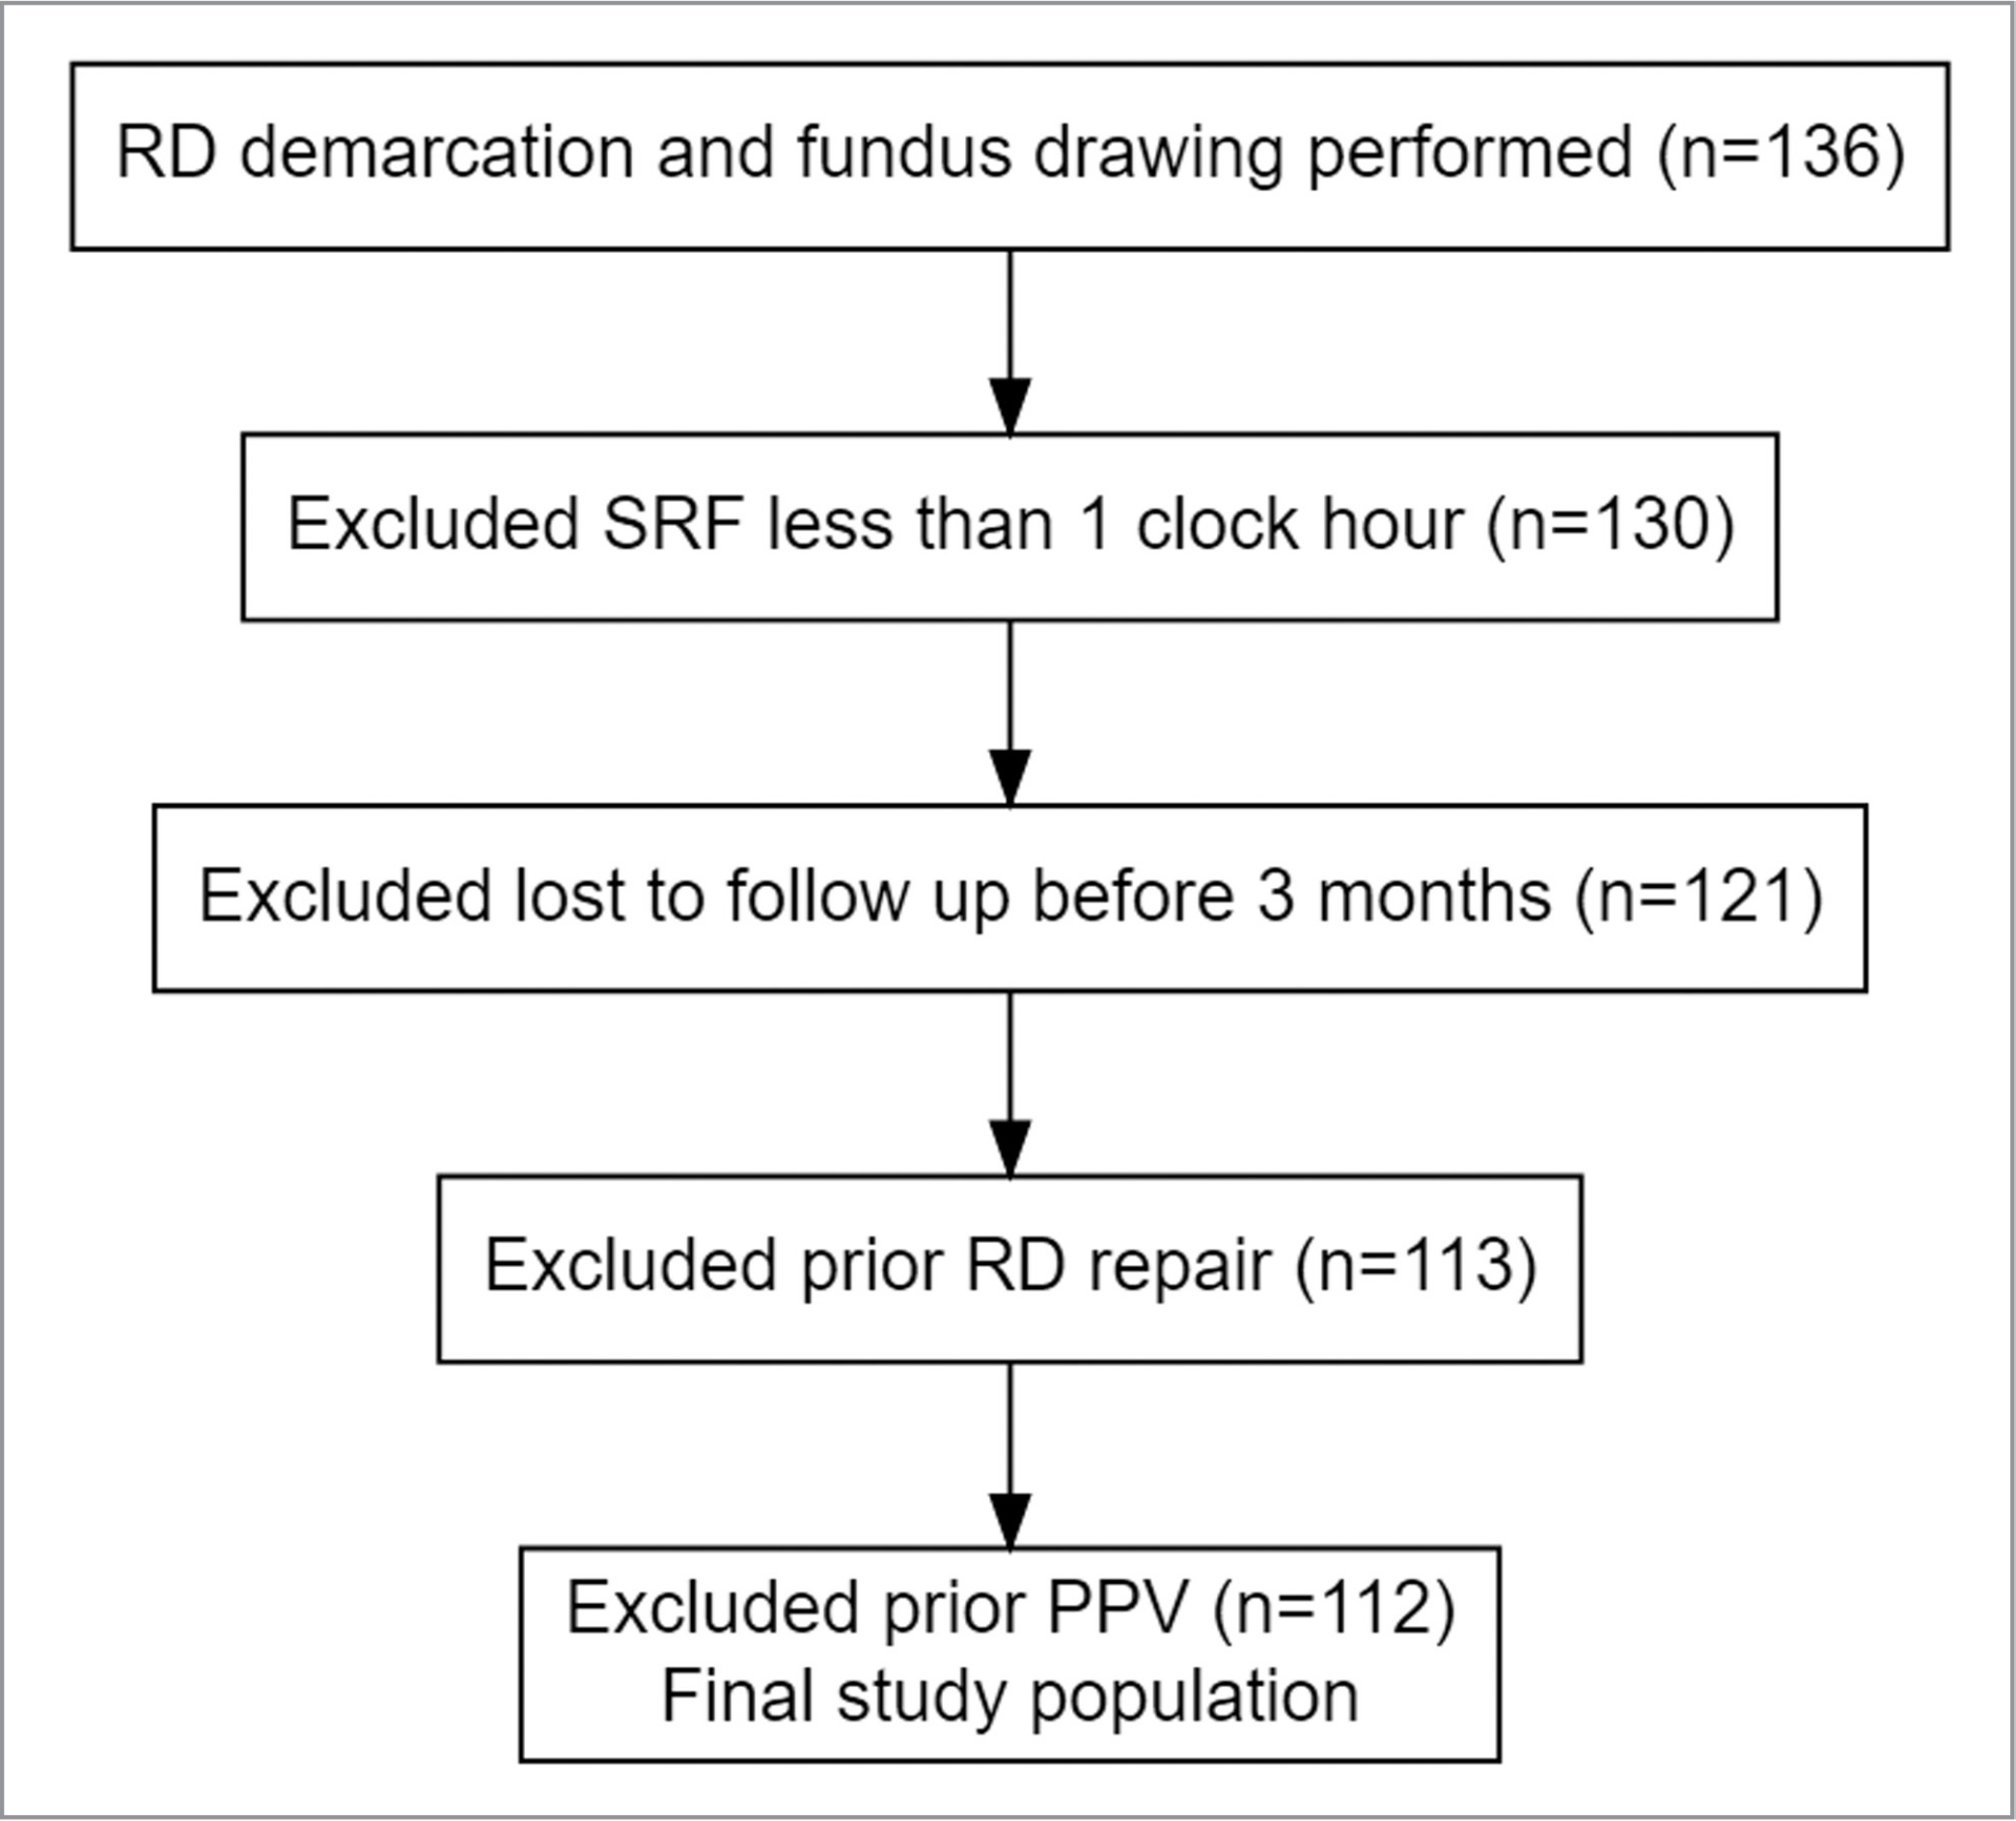 Inclusion and exclusion criteria applied to the study population. RD = retinal detachment; SRF = subretinal fluid; PPV = pars plana vitrectomy